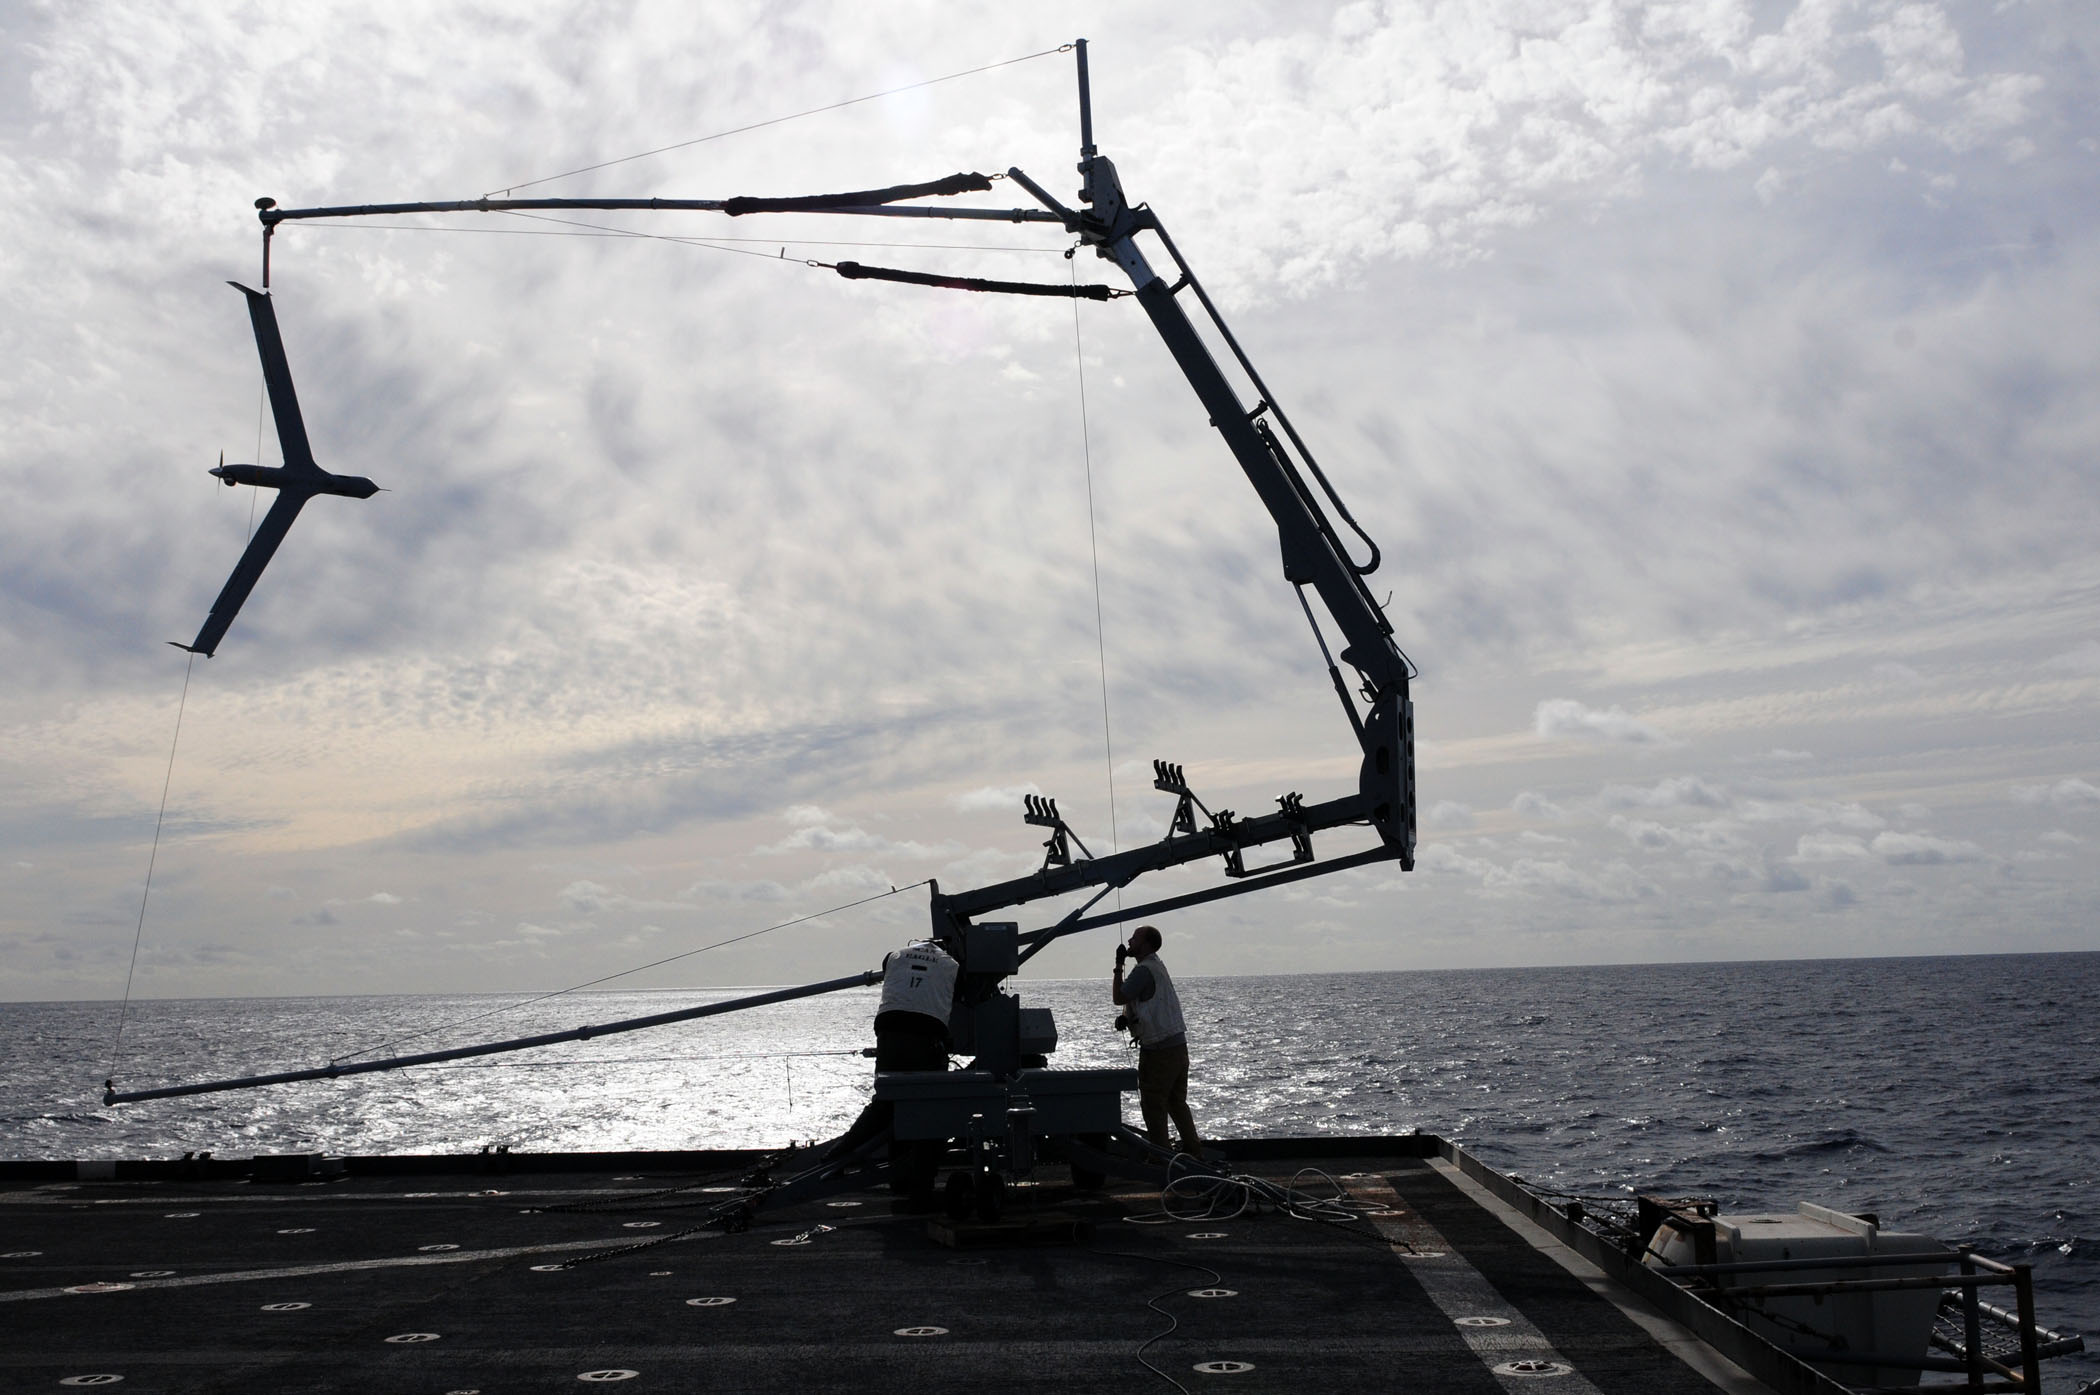 rc air drone with Scaneagle Drone on 112303 in addition Us Approves Sale Of Naval Variant Of Predator Drones To India General Atomics moreover Multirotor Or Fixed Wing additionally Product detail furthermore Xbird 450mm Fpv Foldable Miniquad Kit.